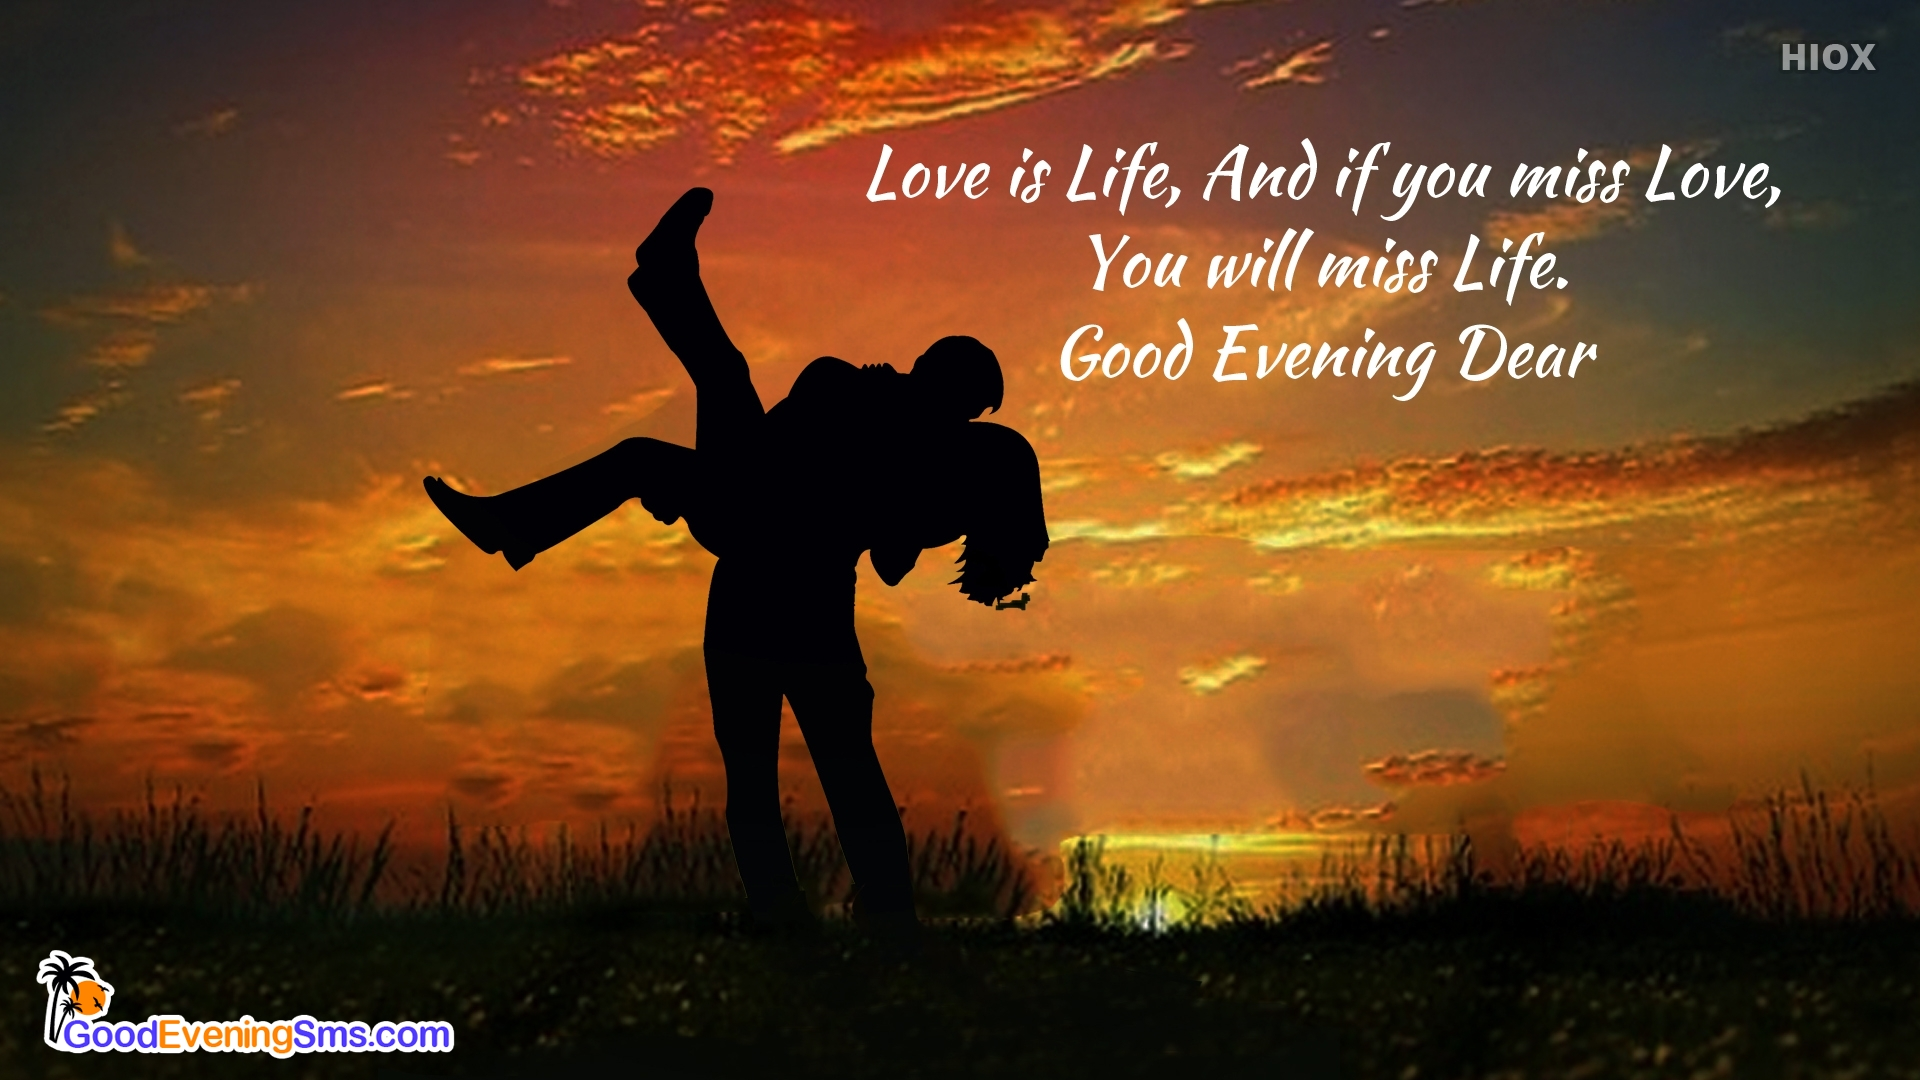 Good Evening Dear Love Quotes